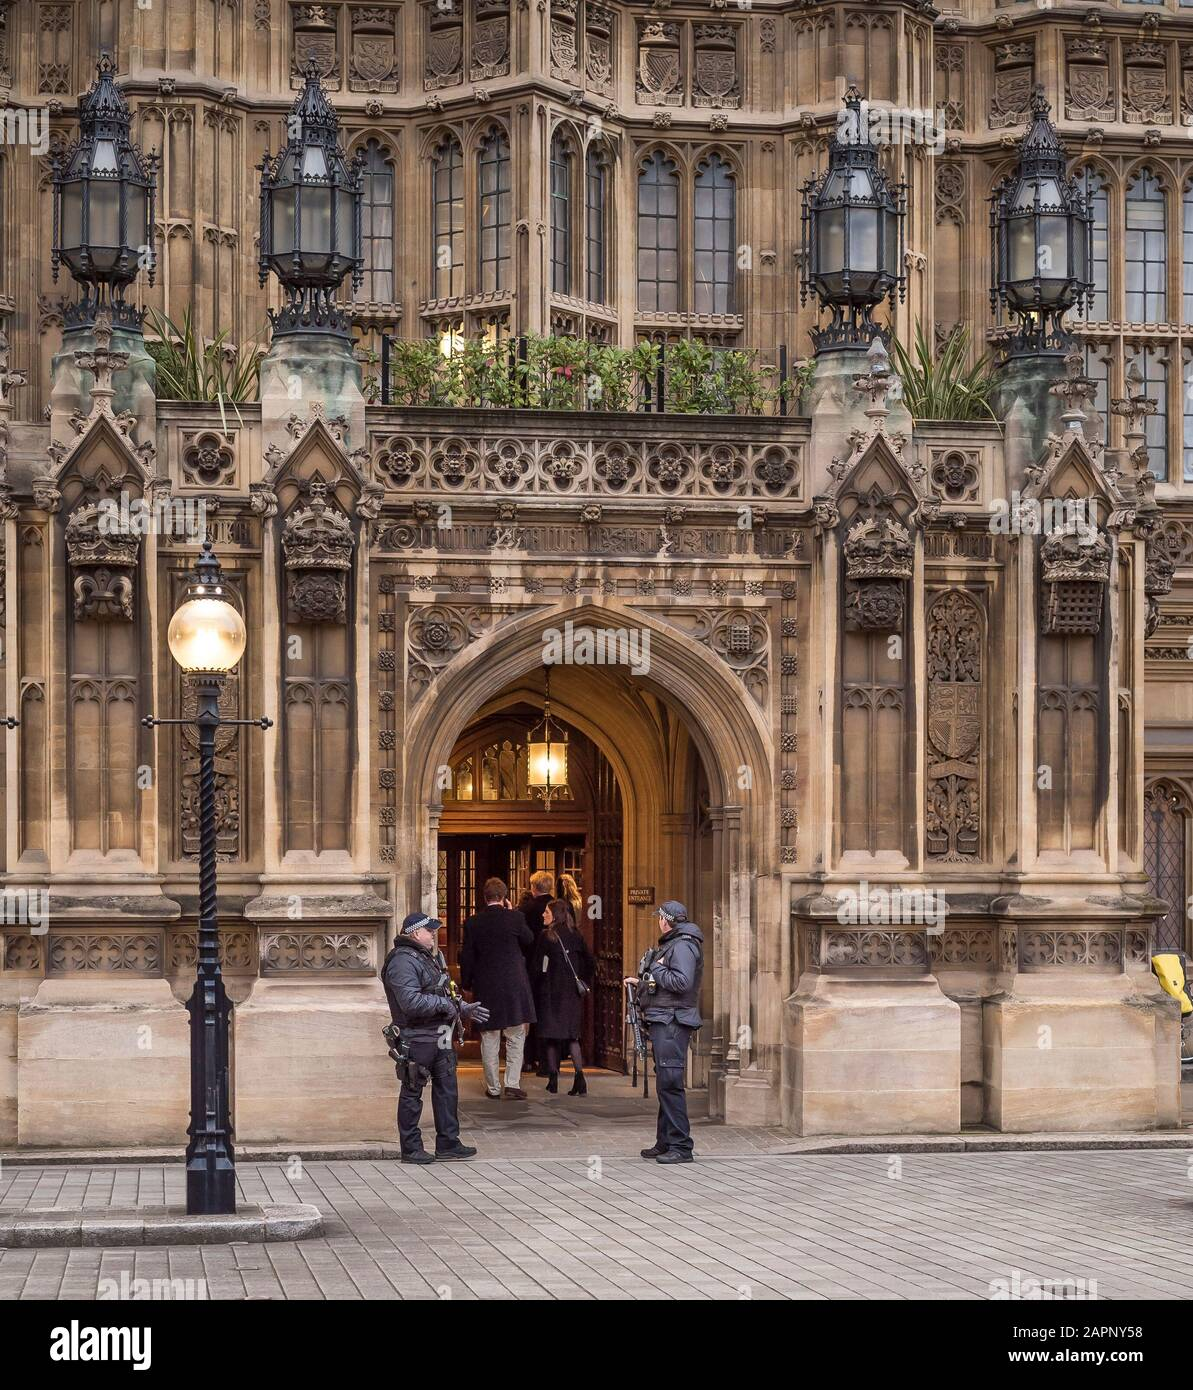 Armed security guards standing outside Houses of Parliament entrance as visitors enter (rear view), Westminster, London UK. Police guarding government. Stock Photo